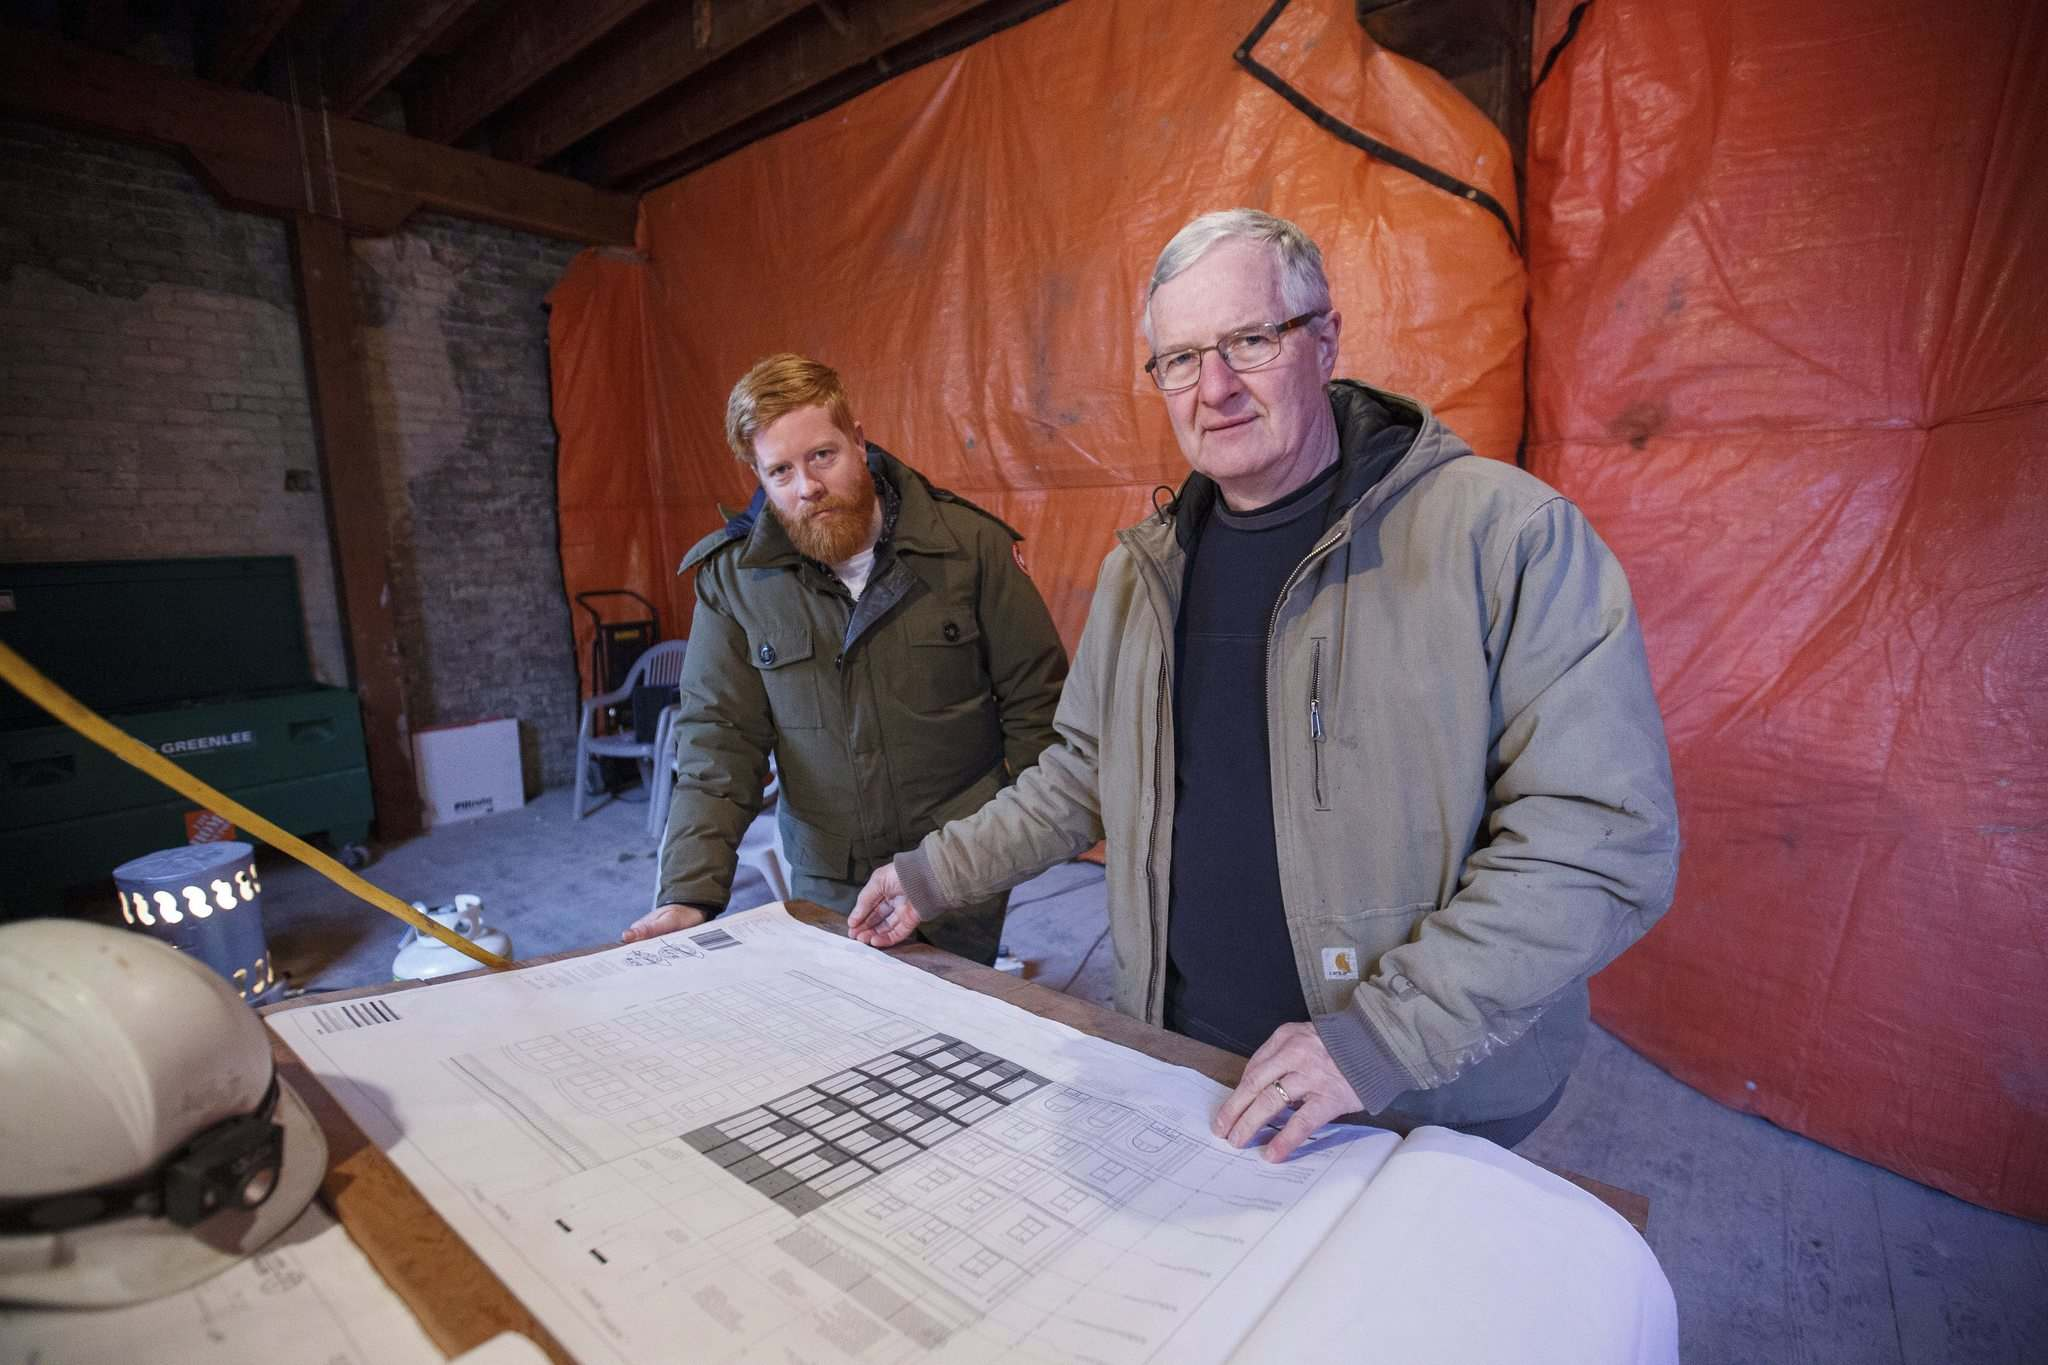 MIKE DEAL / WINNIPEG FREE PRESS</p><p>Alex Boersma (left), co-developer of Warehouse 1885 and site manager Henry Wiebe pore over construction drawings for the 39-unit residential development at 104 and 108 Princess Ave.</p>